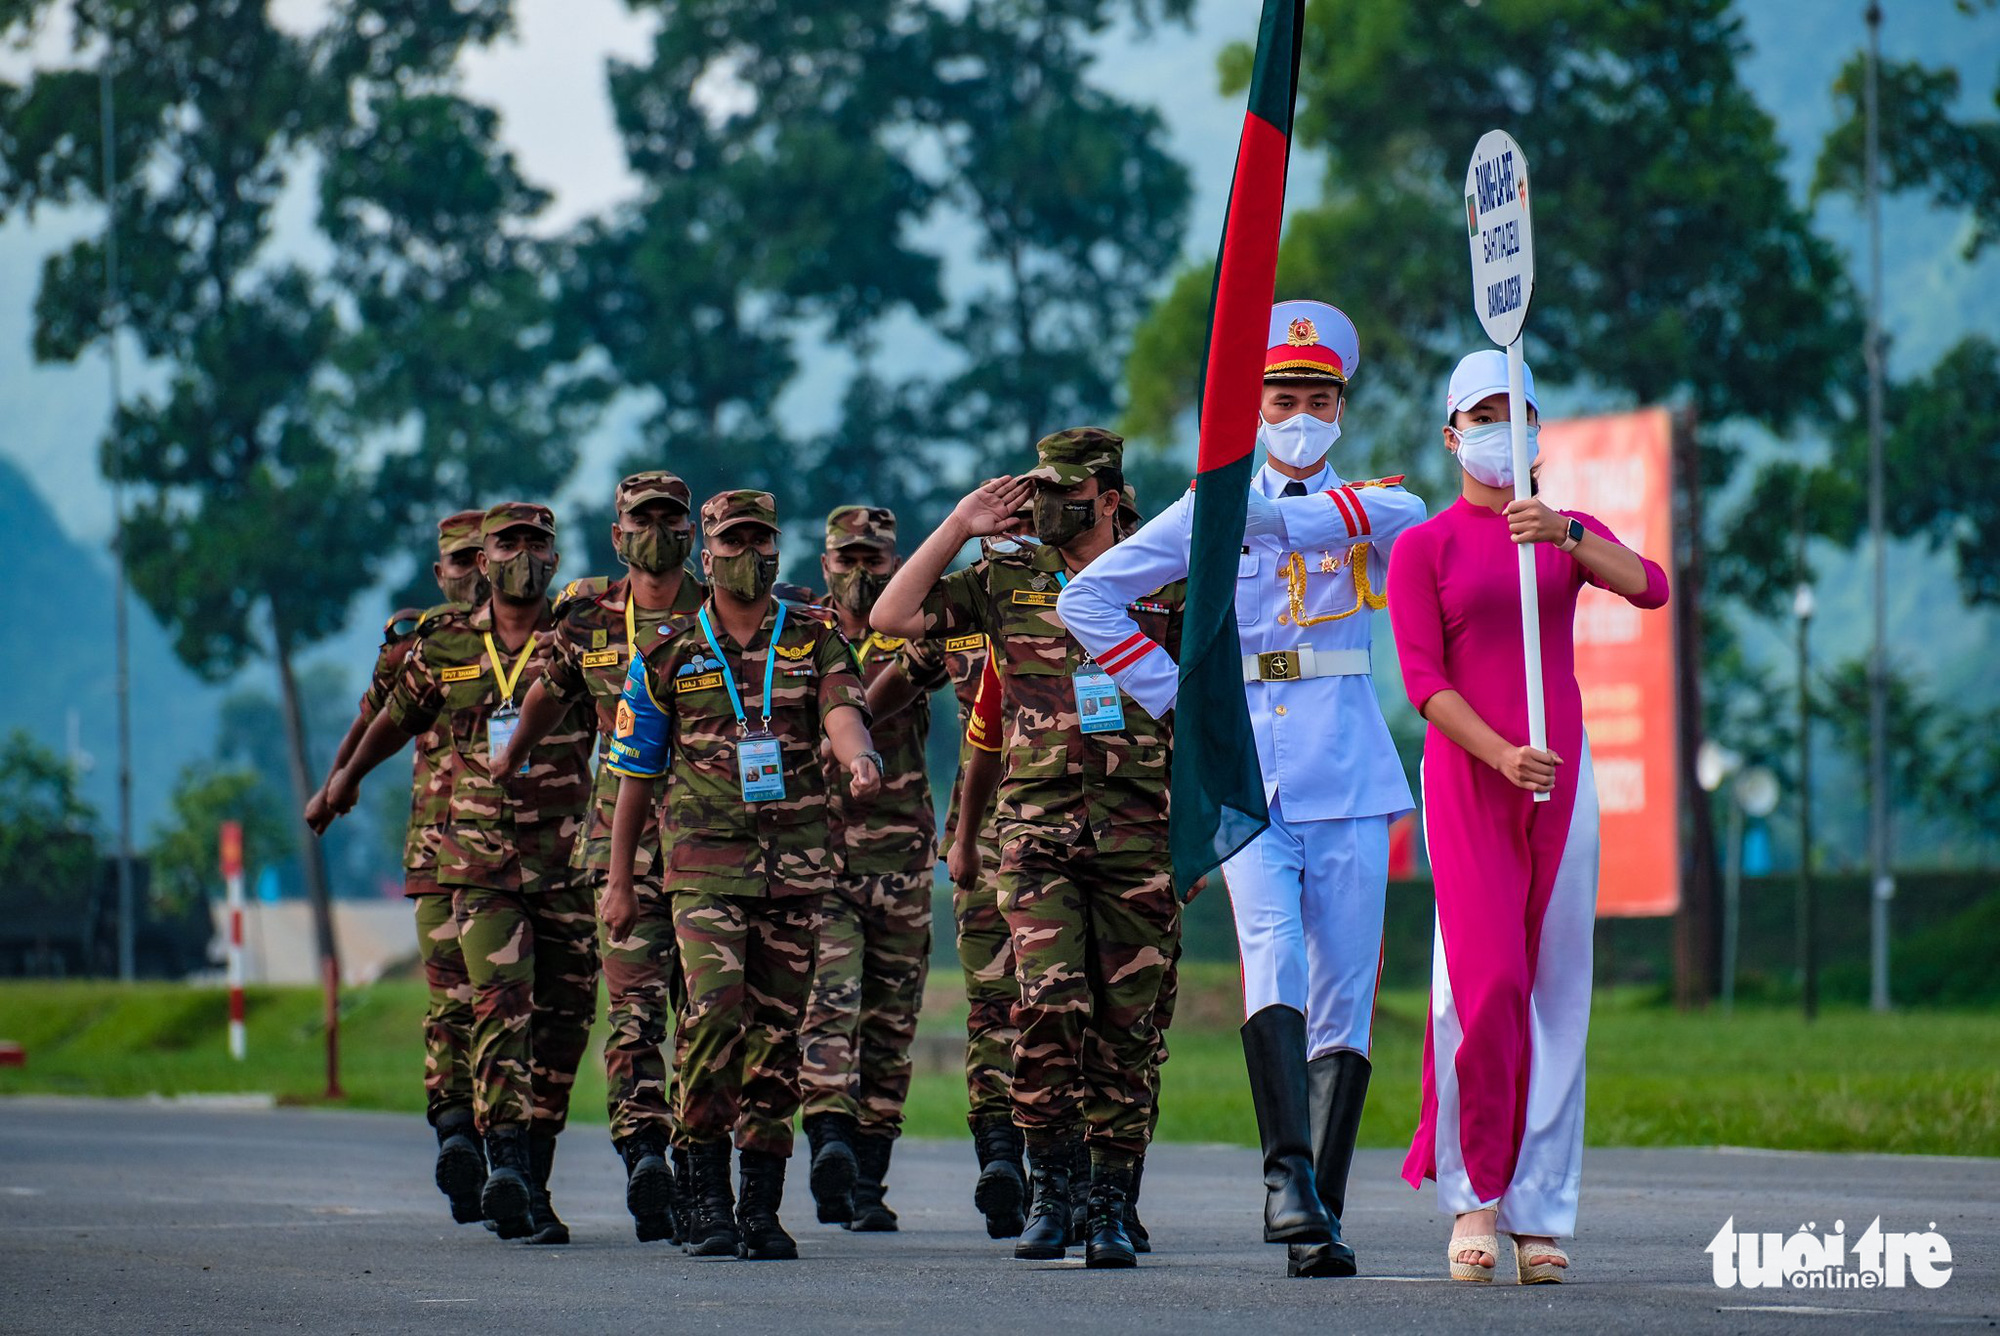 The Bangladeshi team march at the opening ceremony of the contests at the 2021 International Army Games in Hanoi on August 31, 2021. Photo: Nam Tran / Tuoi Tre